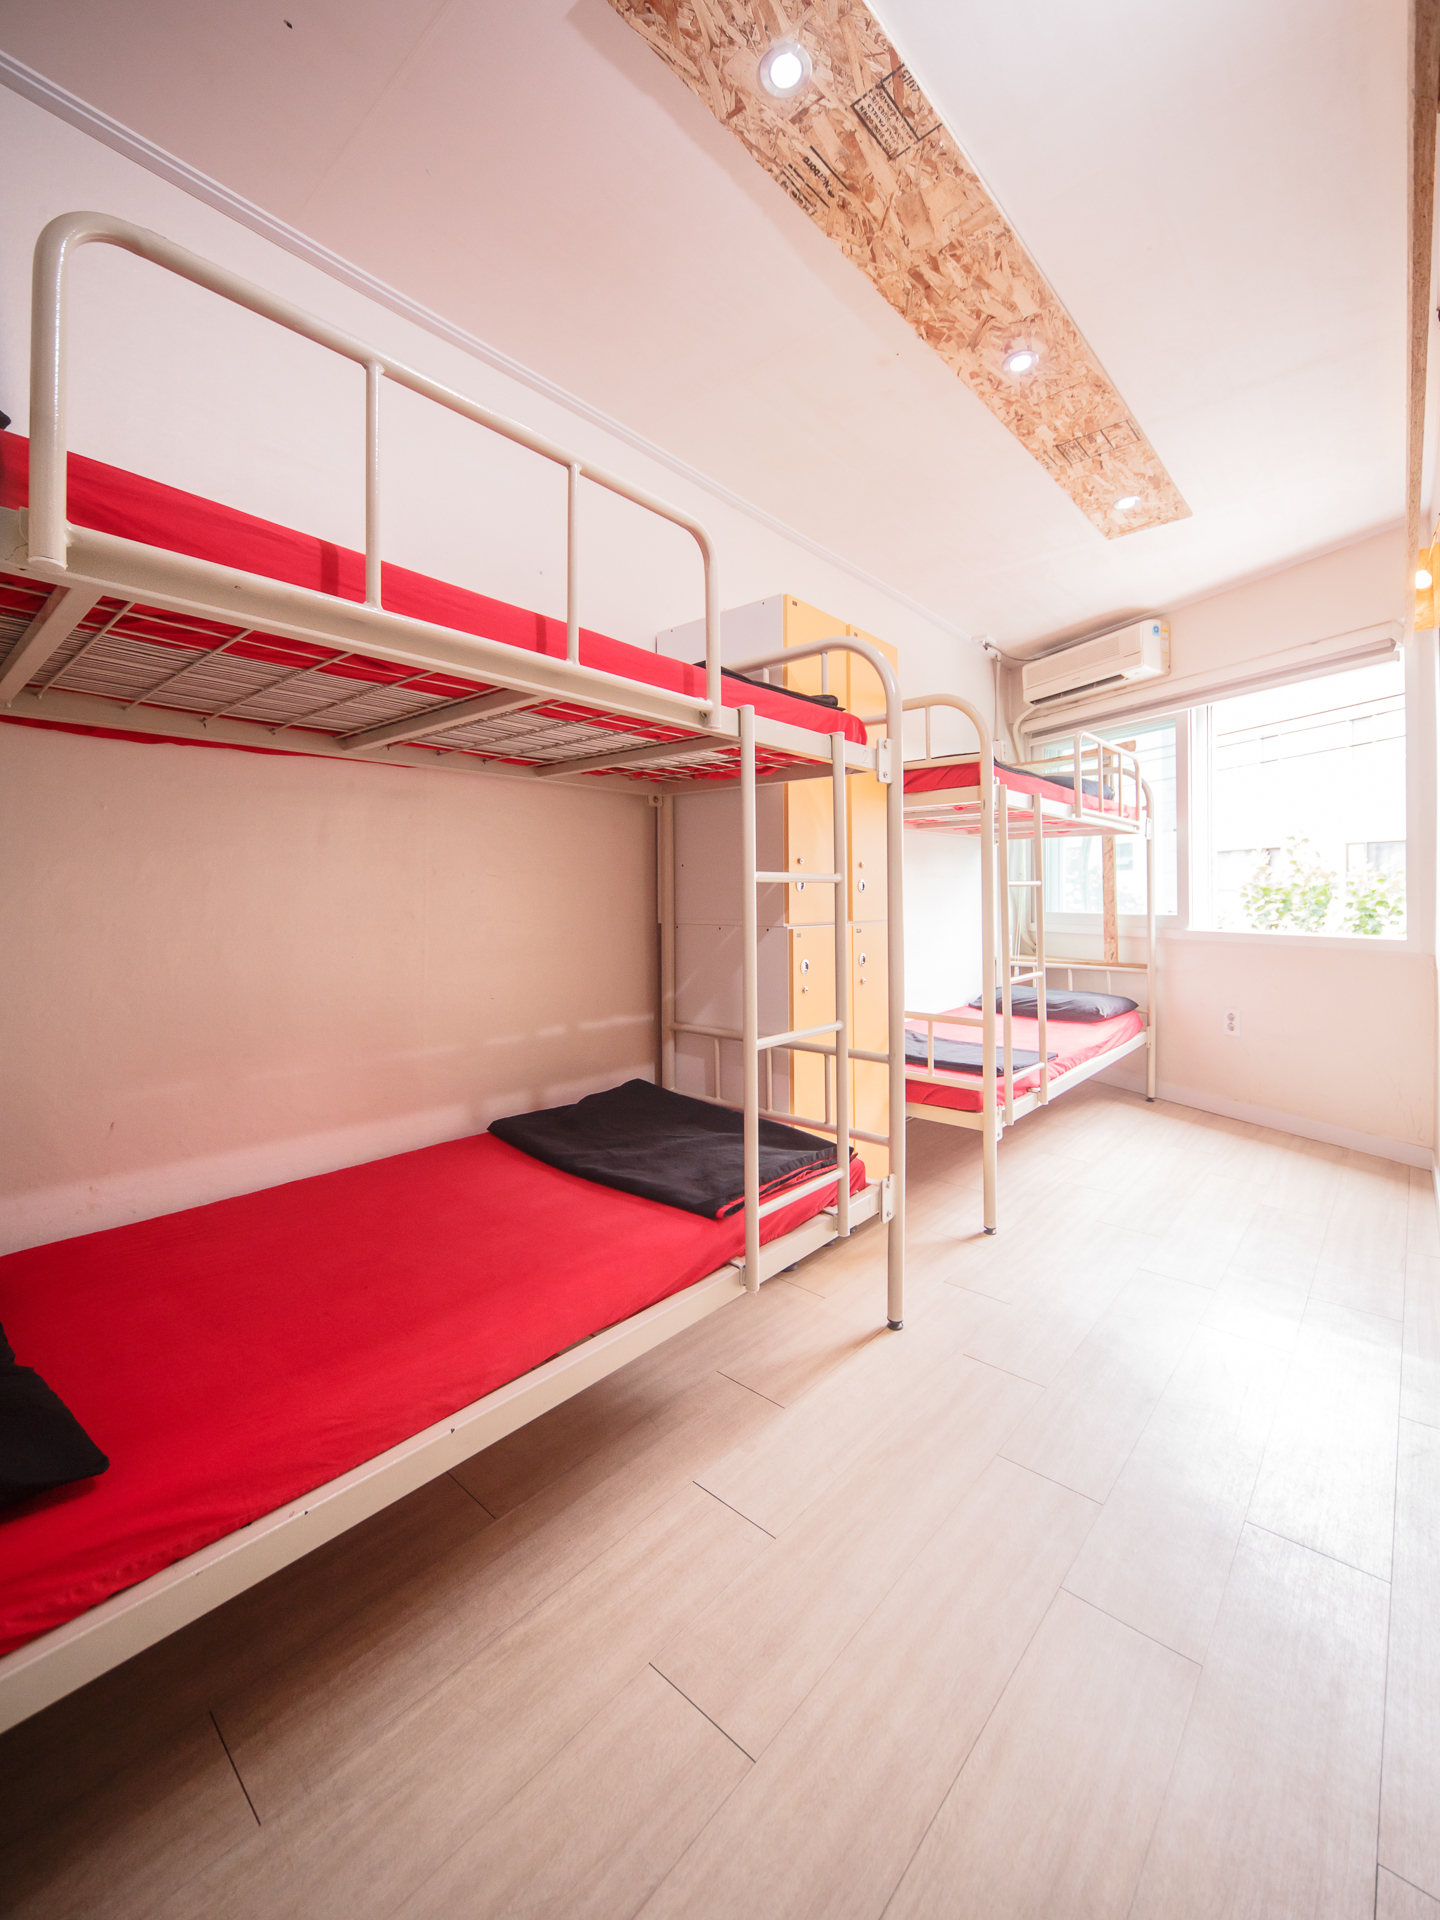 4 bed Dormitory, Itaewon Inn hostel